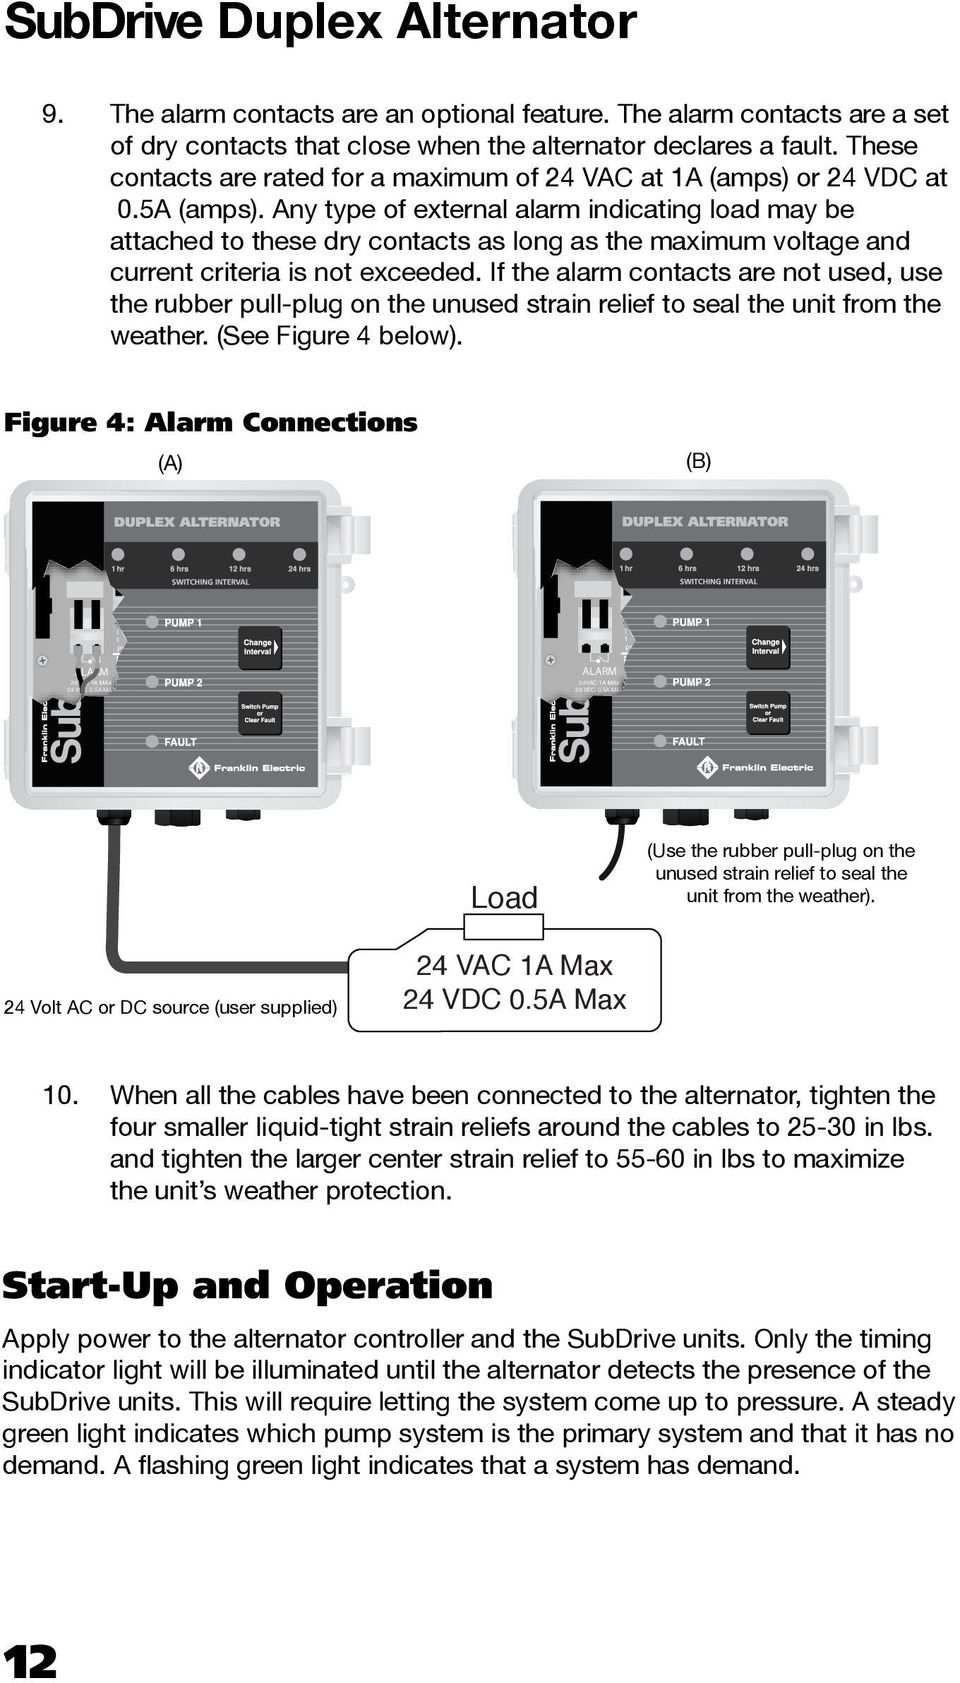 Any type of external alarm indicating load may be attached to these dry contacts as long as the maximum voltage and current criteria is not exceeded.